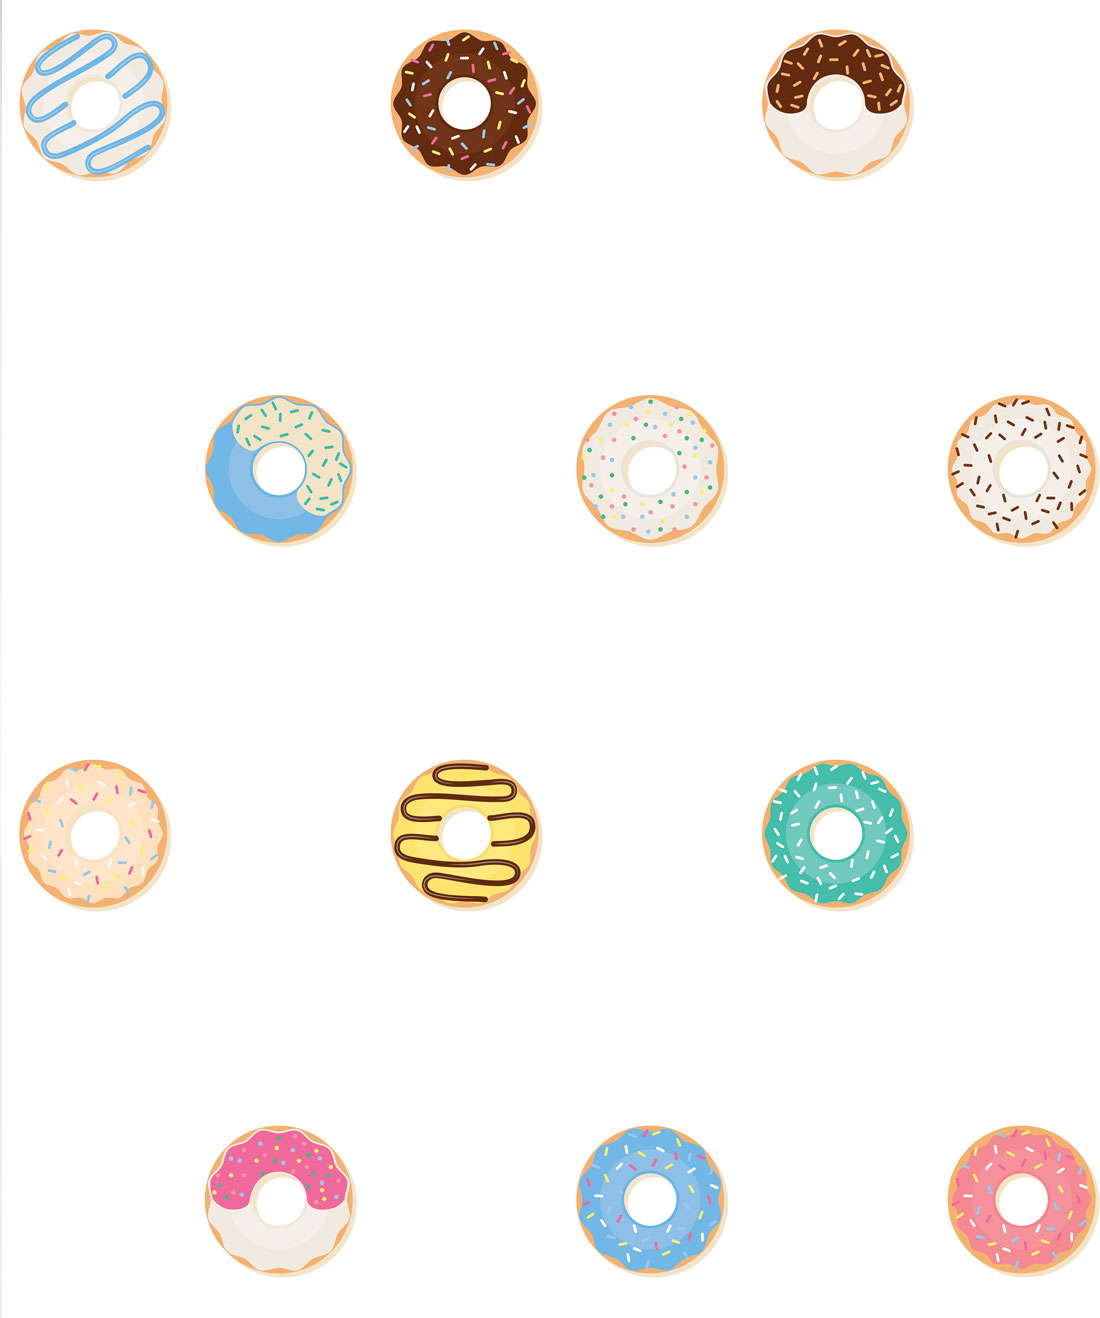 Doughnuts Wallpaper